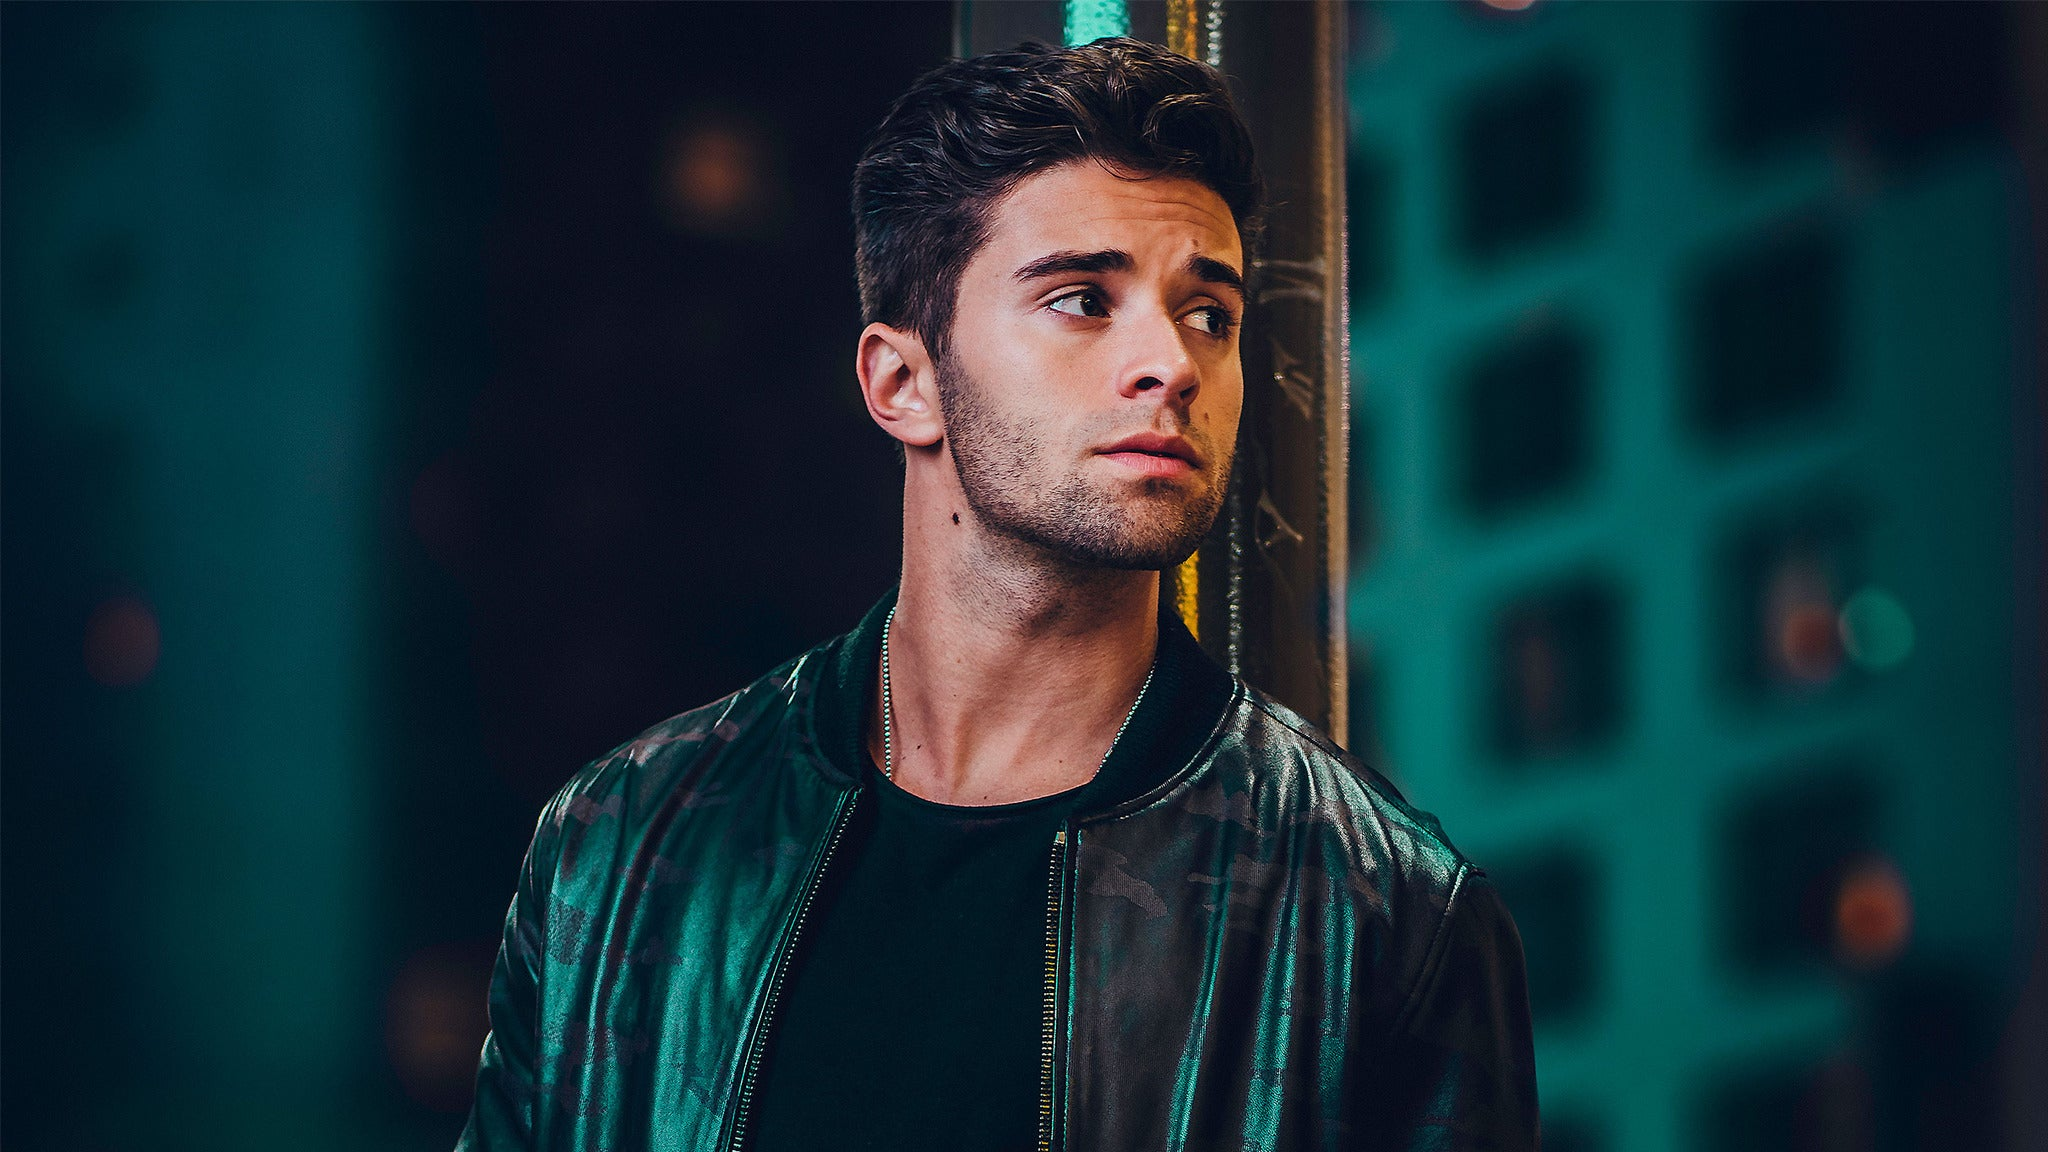 Jake Miller at 89th Street